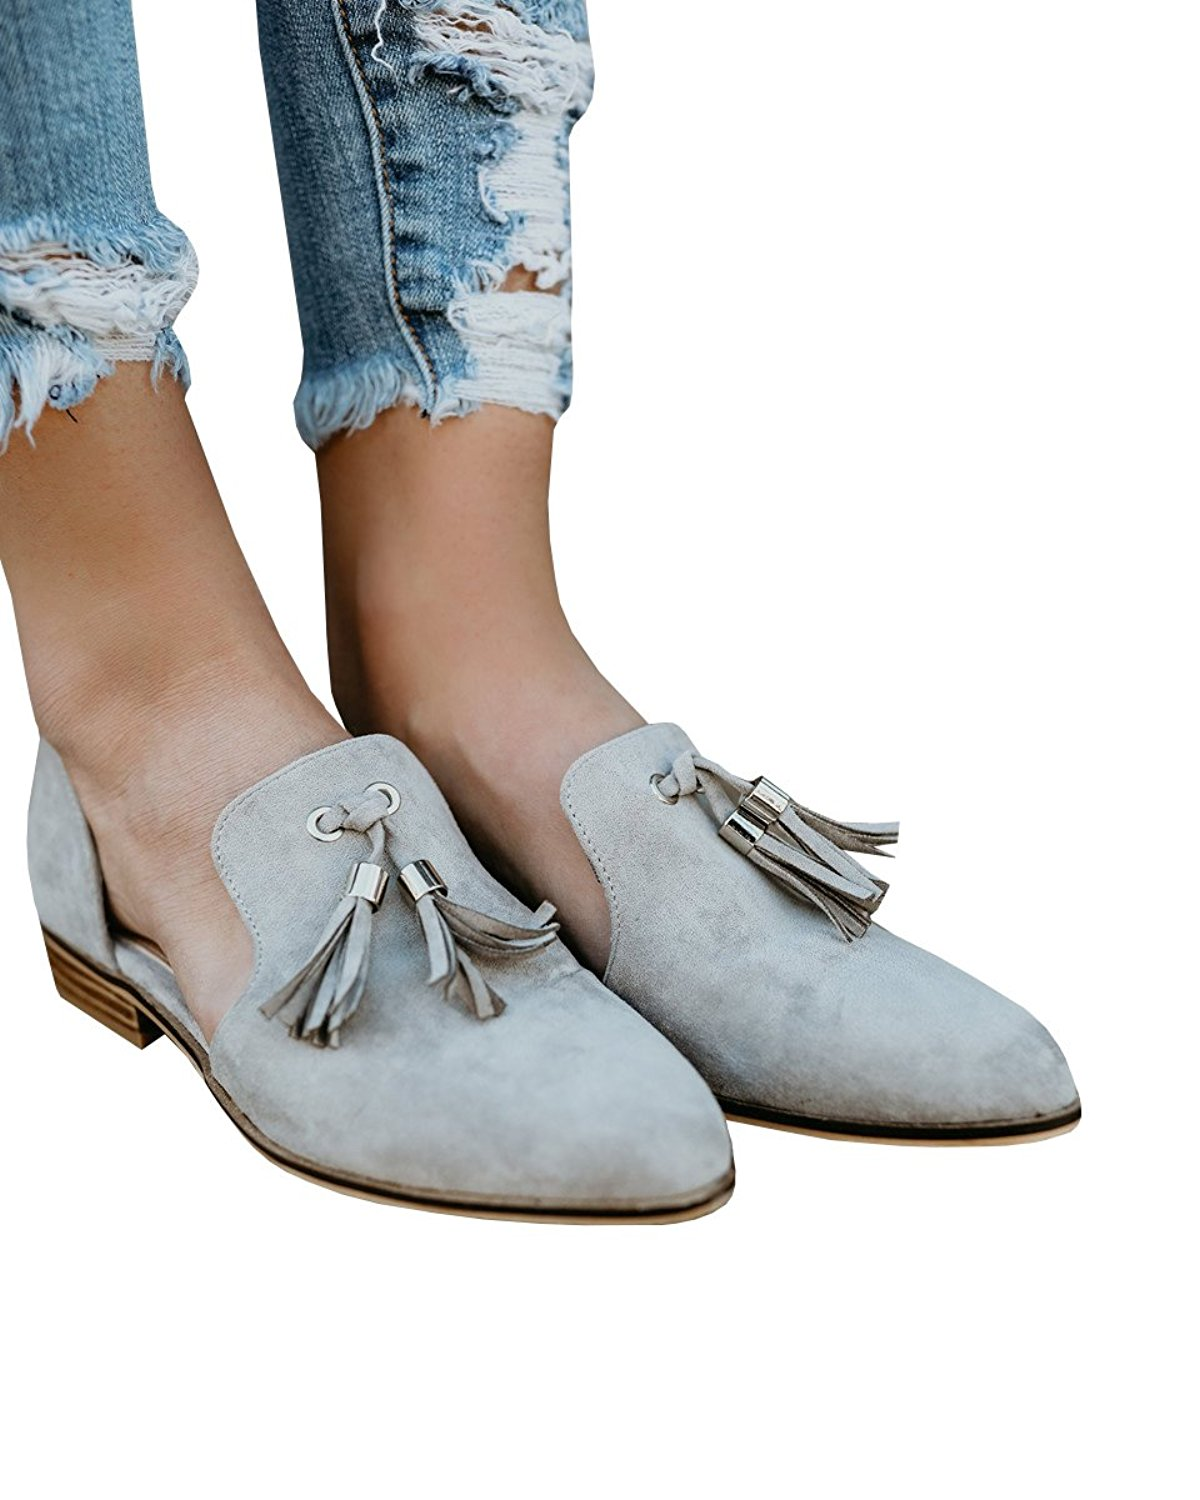 Cheap find Navy Shoes Low Heel, find Cheap Navy Shoes Low Heel deals on line at aa4967